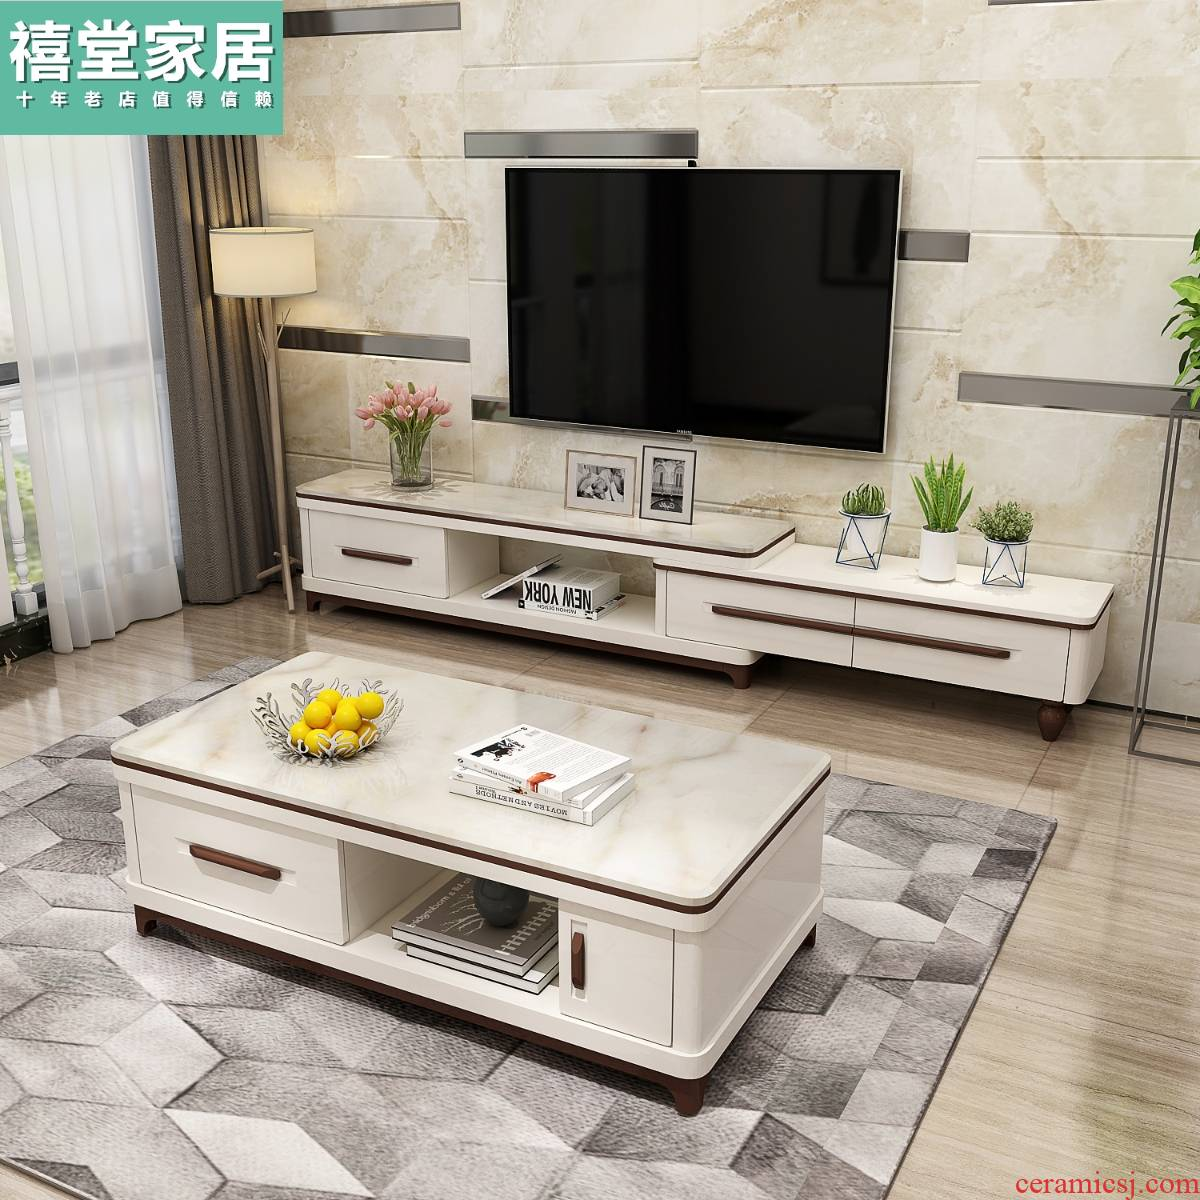 I and contracted marble TV ark of tea table combination suit scalable, film and television ark, Nordic small family sitting room